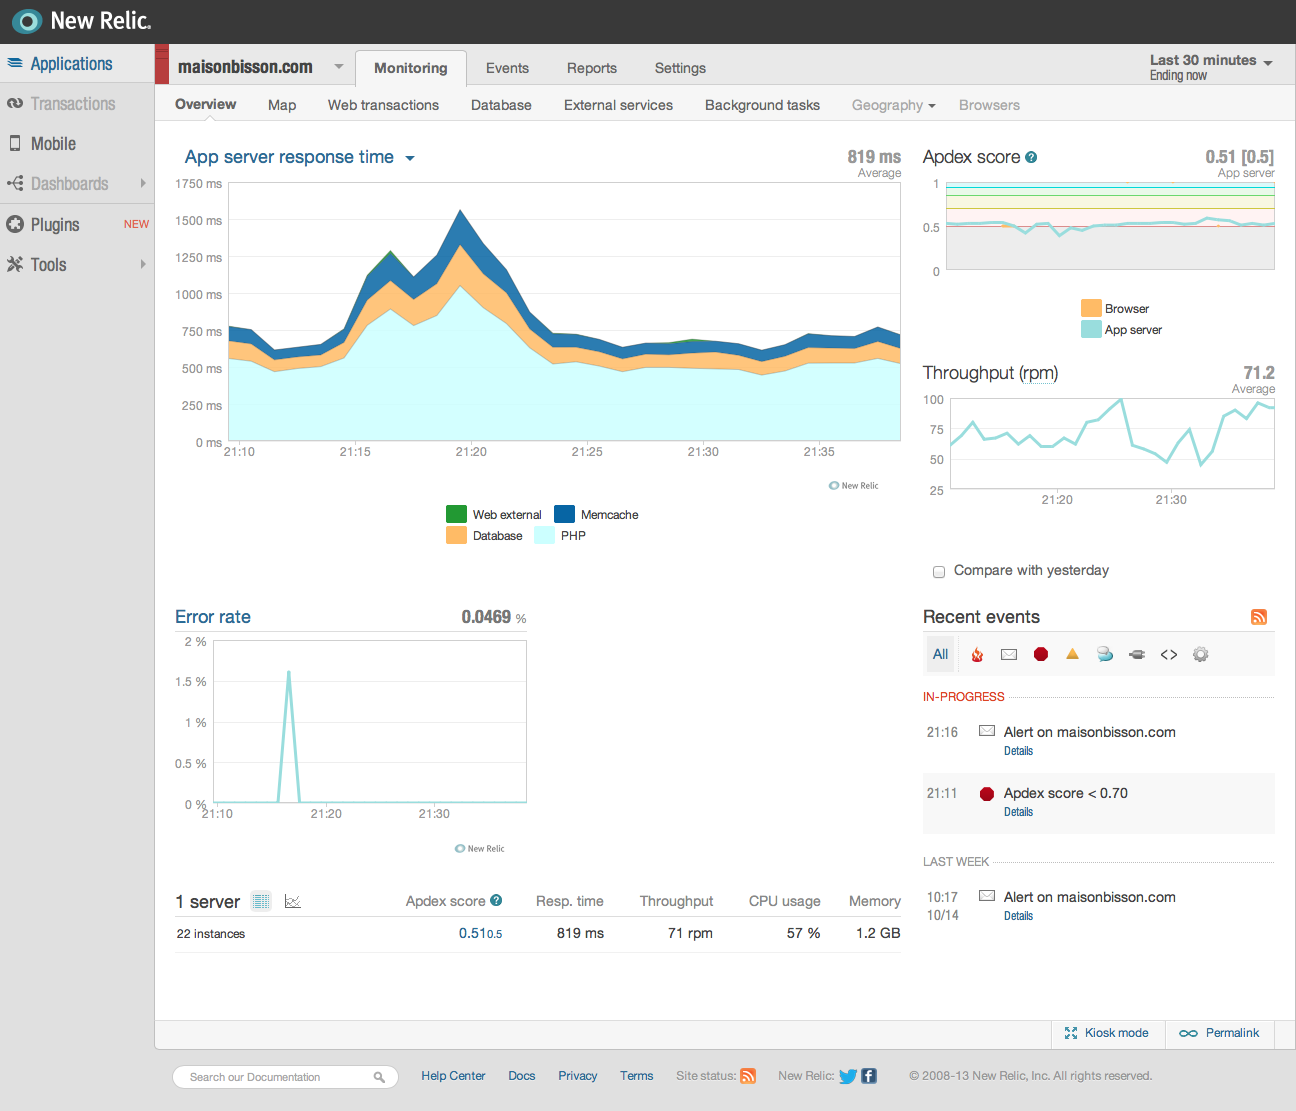 New Relic application overview, showing performance history for a single app.